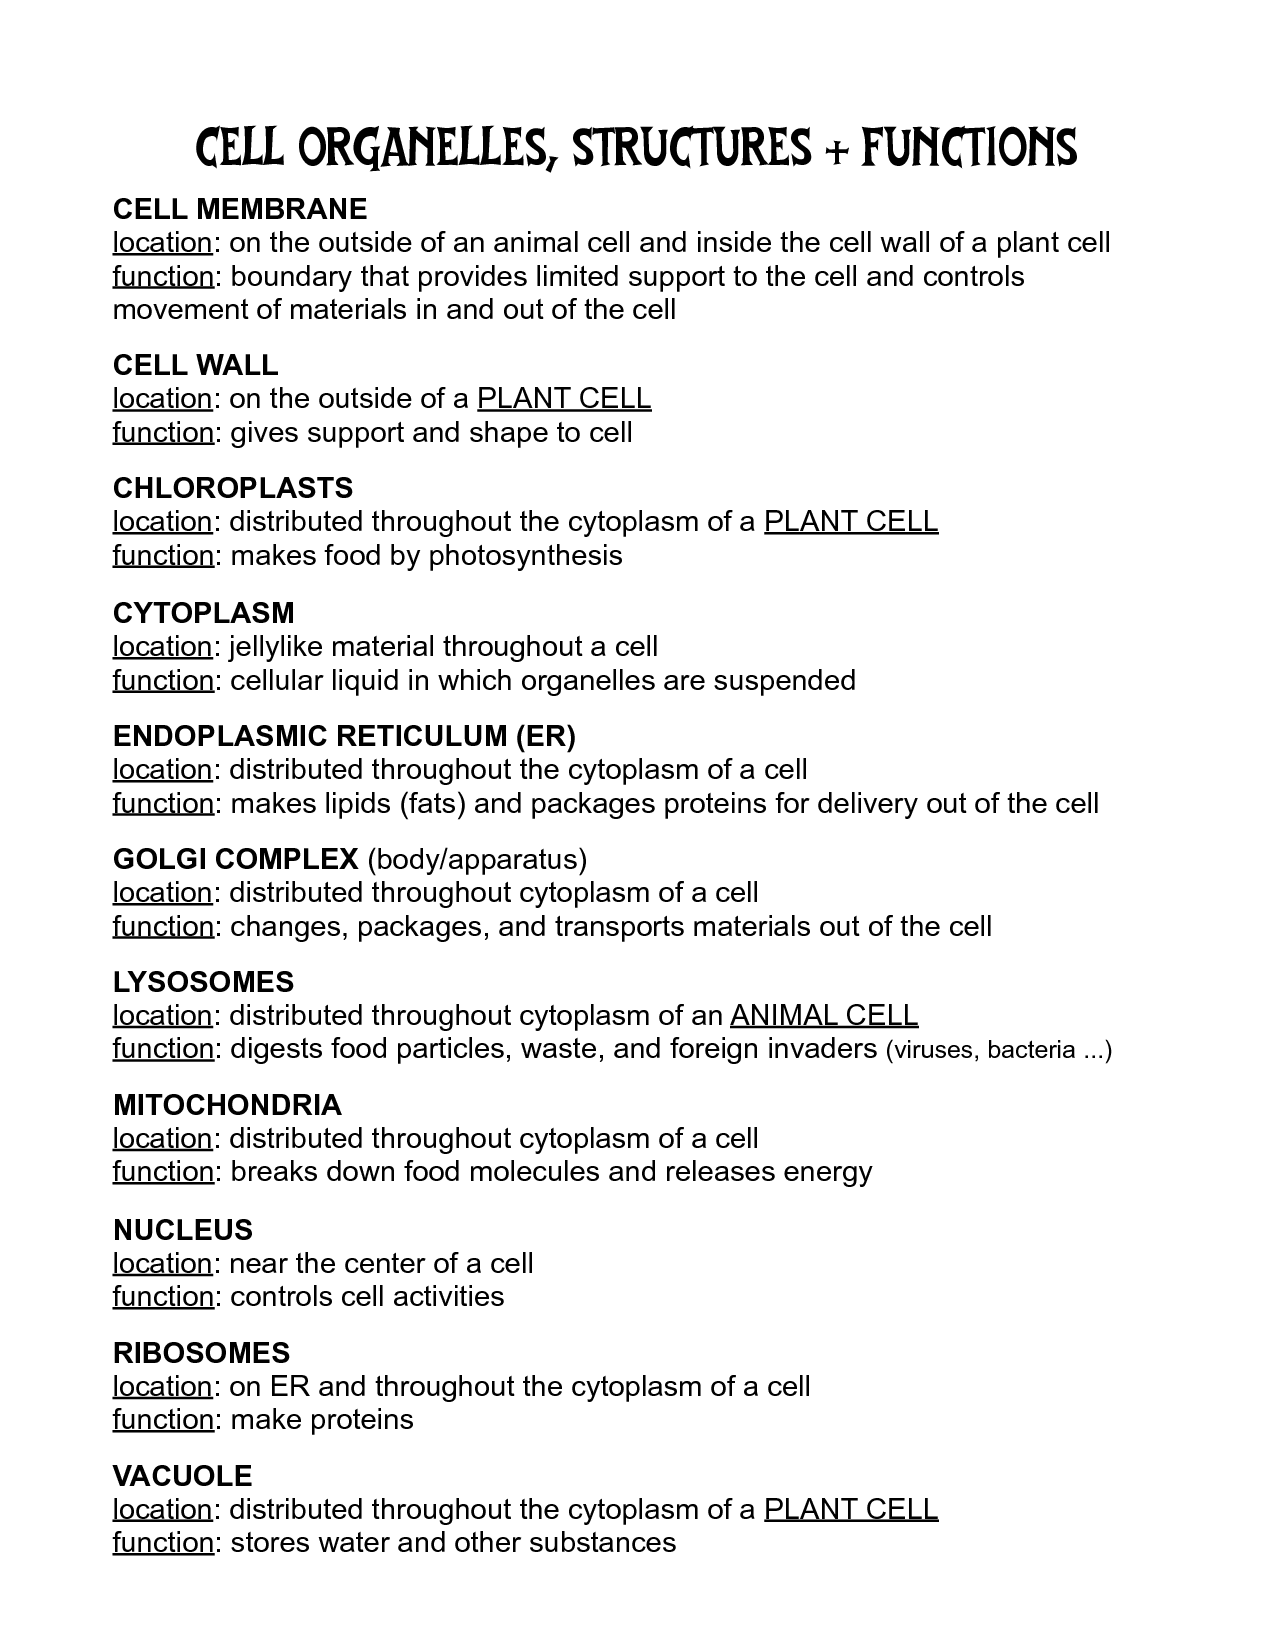 Plant Cell Coloring Key 0 On Plant Cell Coloring Key Animal Cells Worksheet Plant Cells Worksheet Cells Worksheet [ 3229 x 2479 Pixel ]